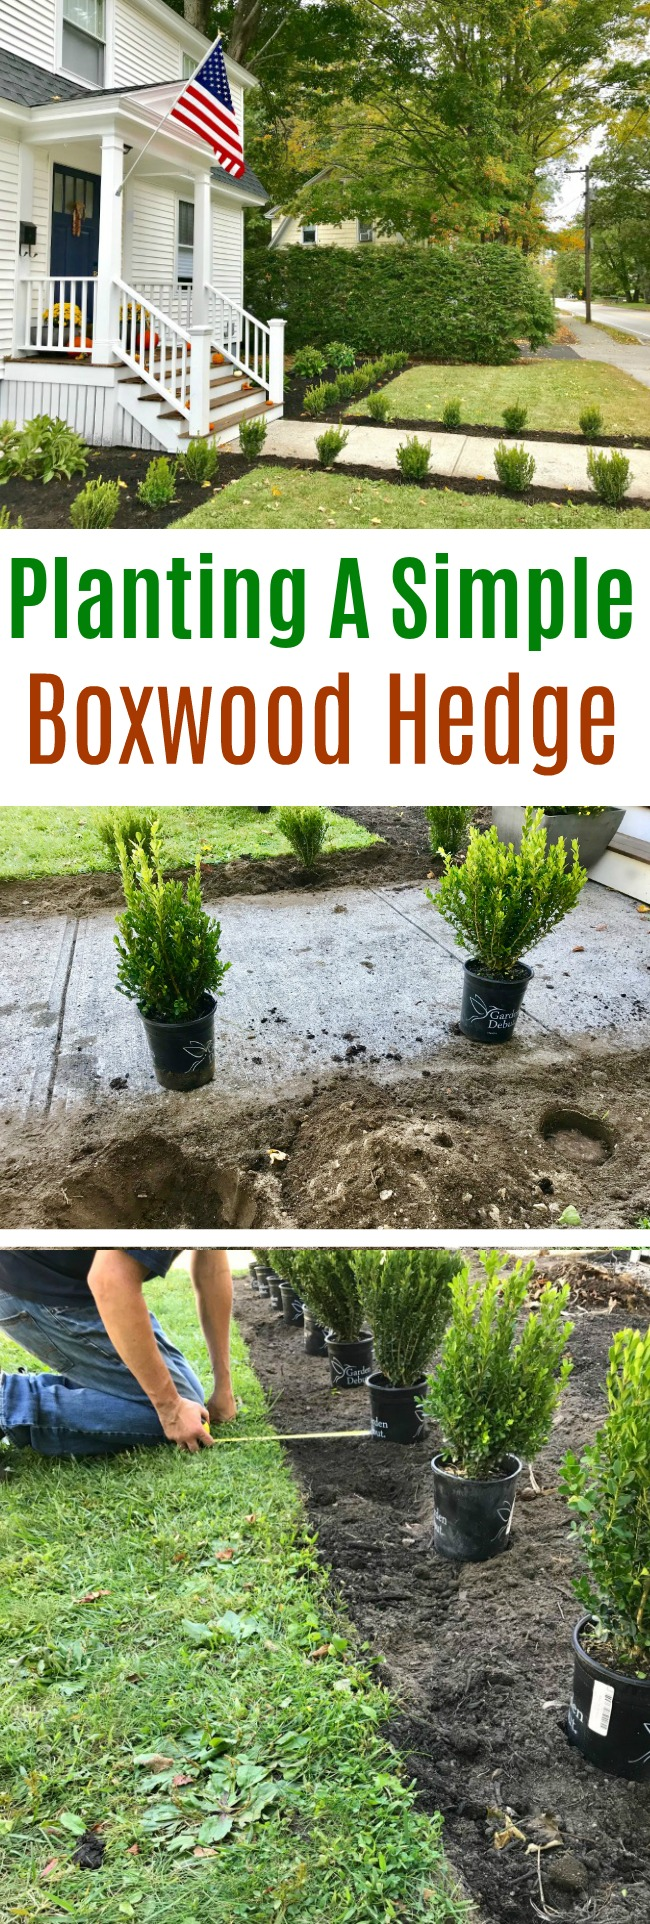 Gardening in New England – Planting A Simple Boxwood Hedge